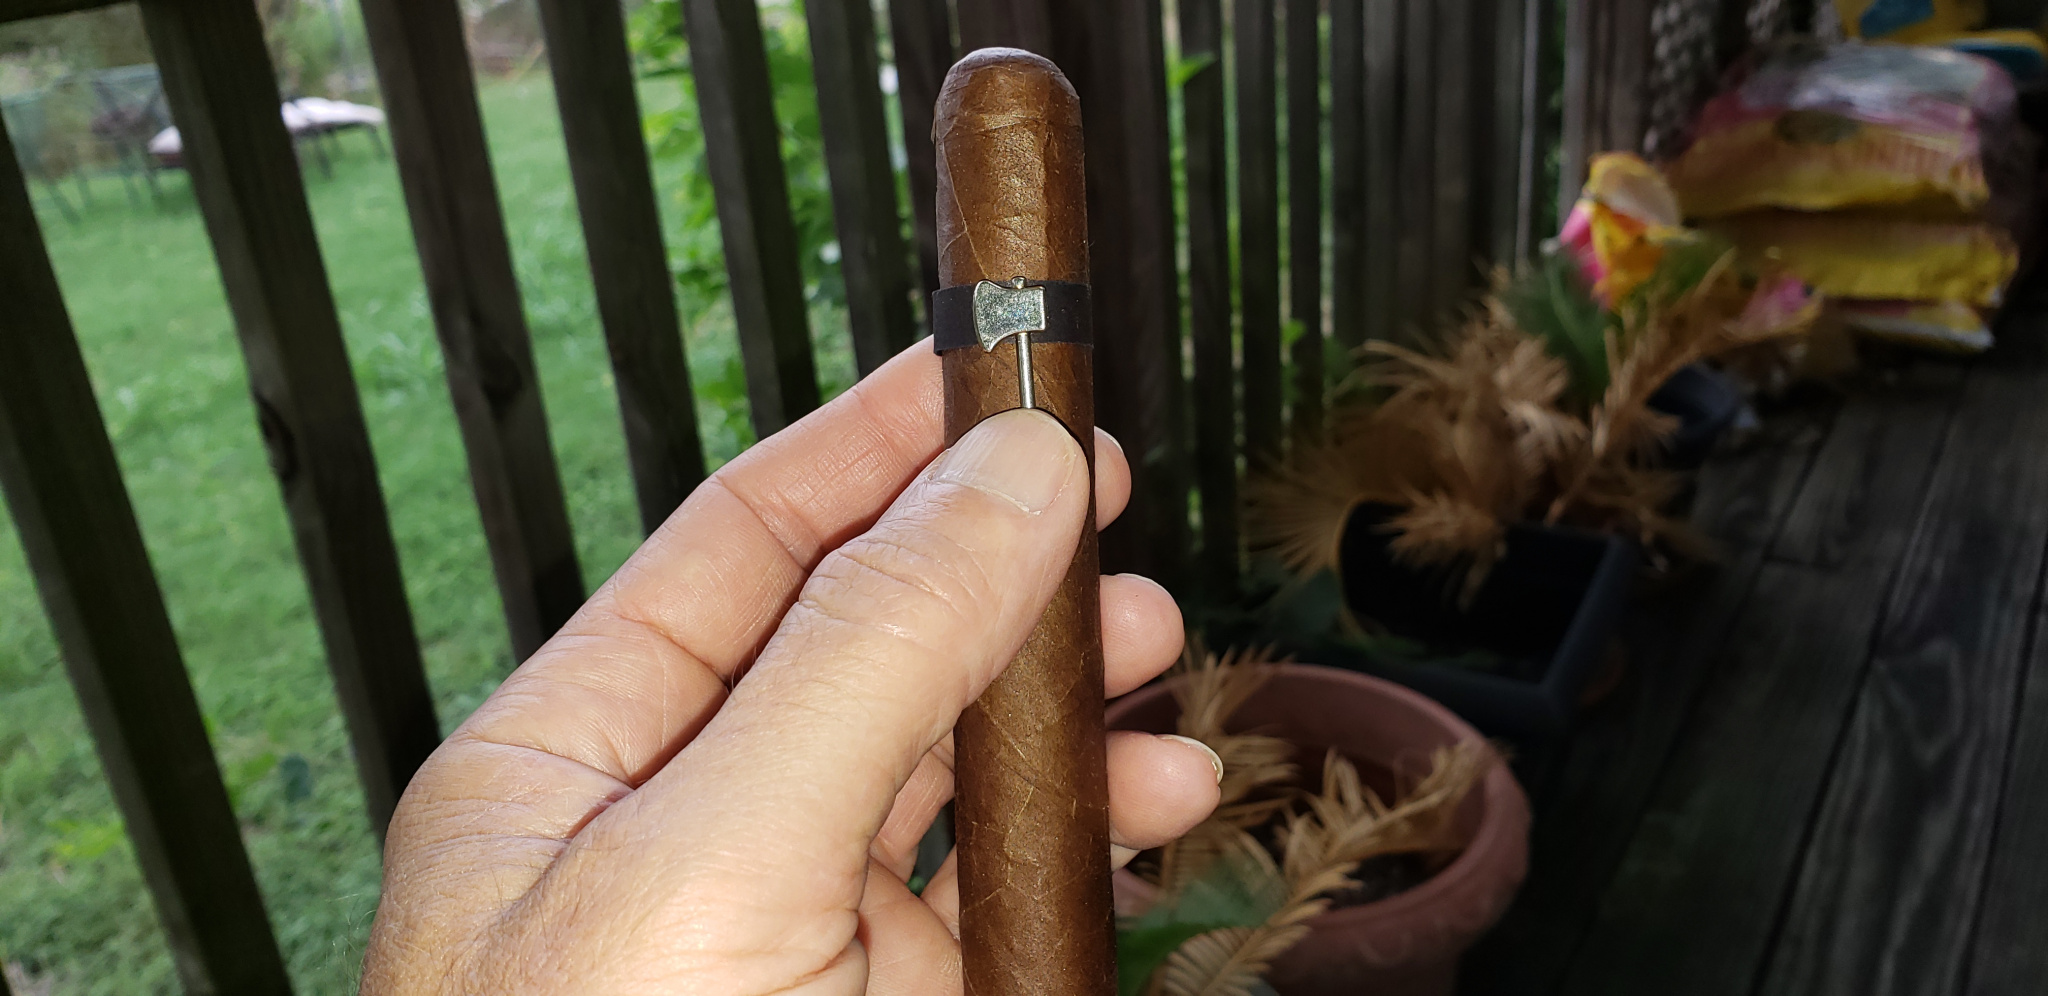 What Did You Smoke Today?  (Non-Habanos)-31a4bbdf-c63c-43a3-a493-c2d1560875b6.jpg